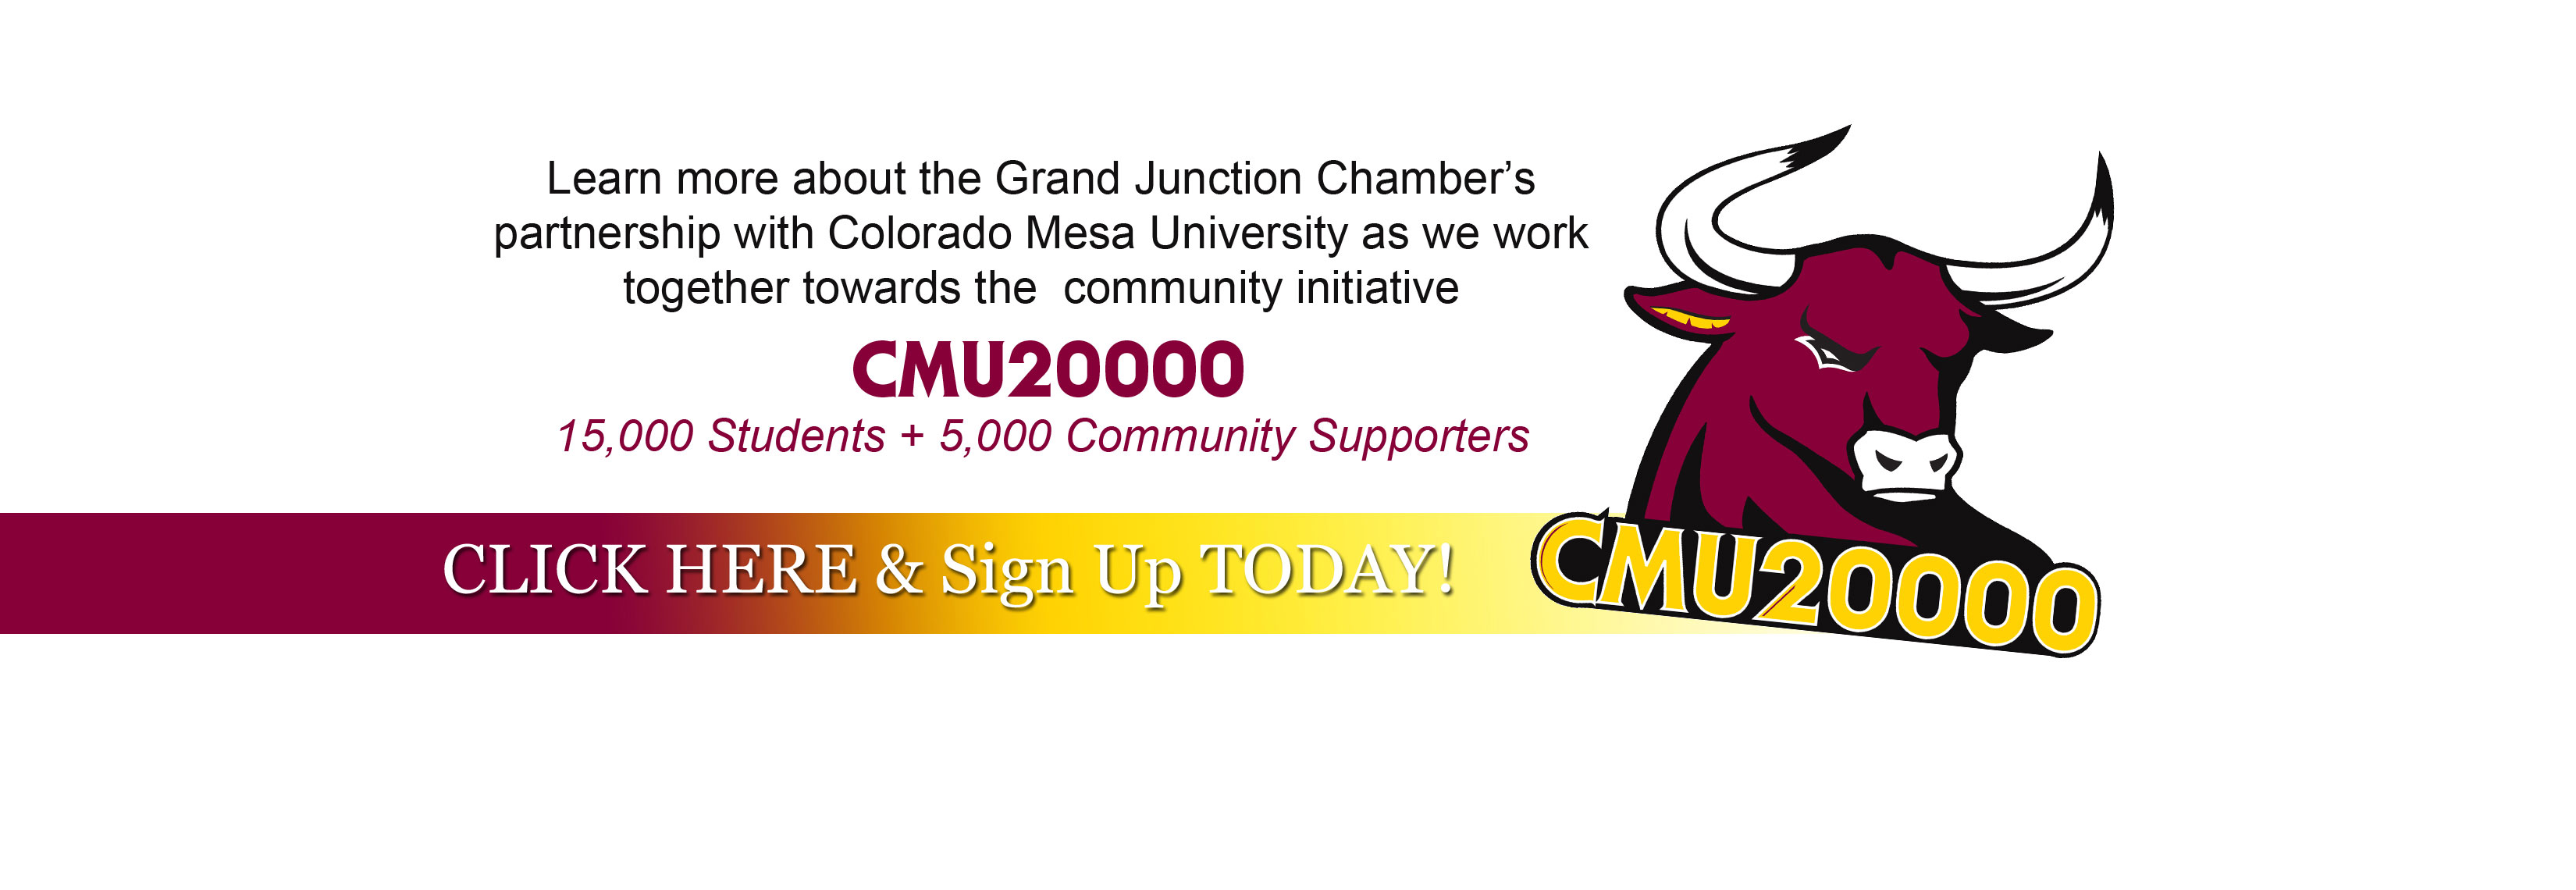 CMU 20000 - Learn more about the Grand Junction Chamber's partnership with Colorado Mesa University